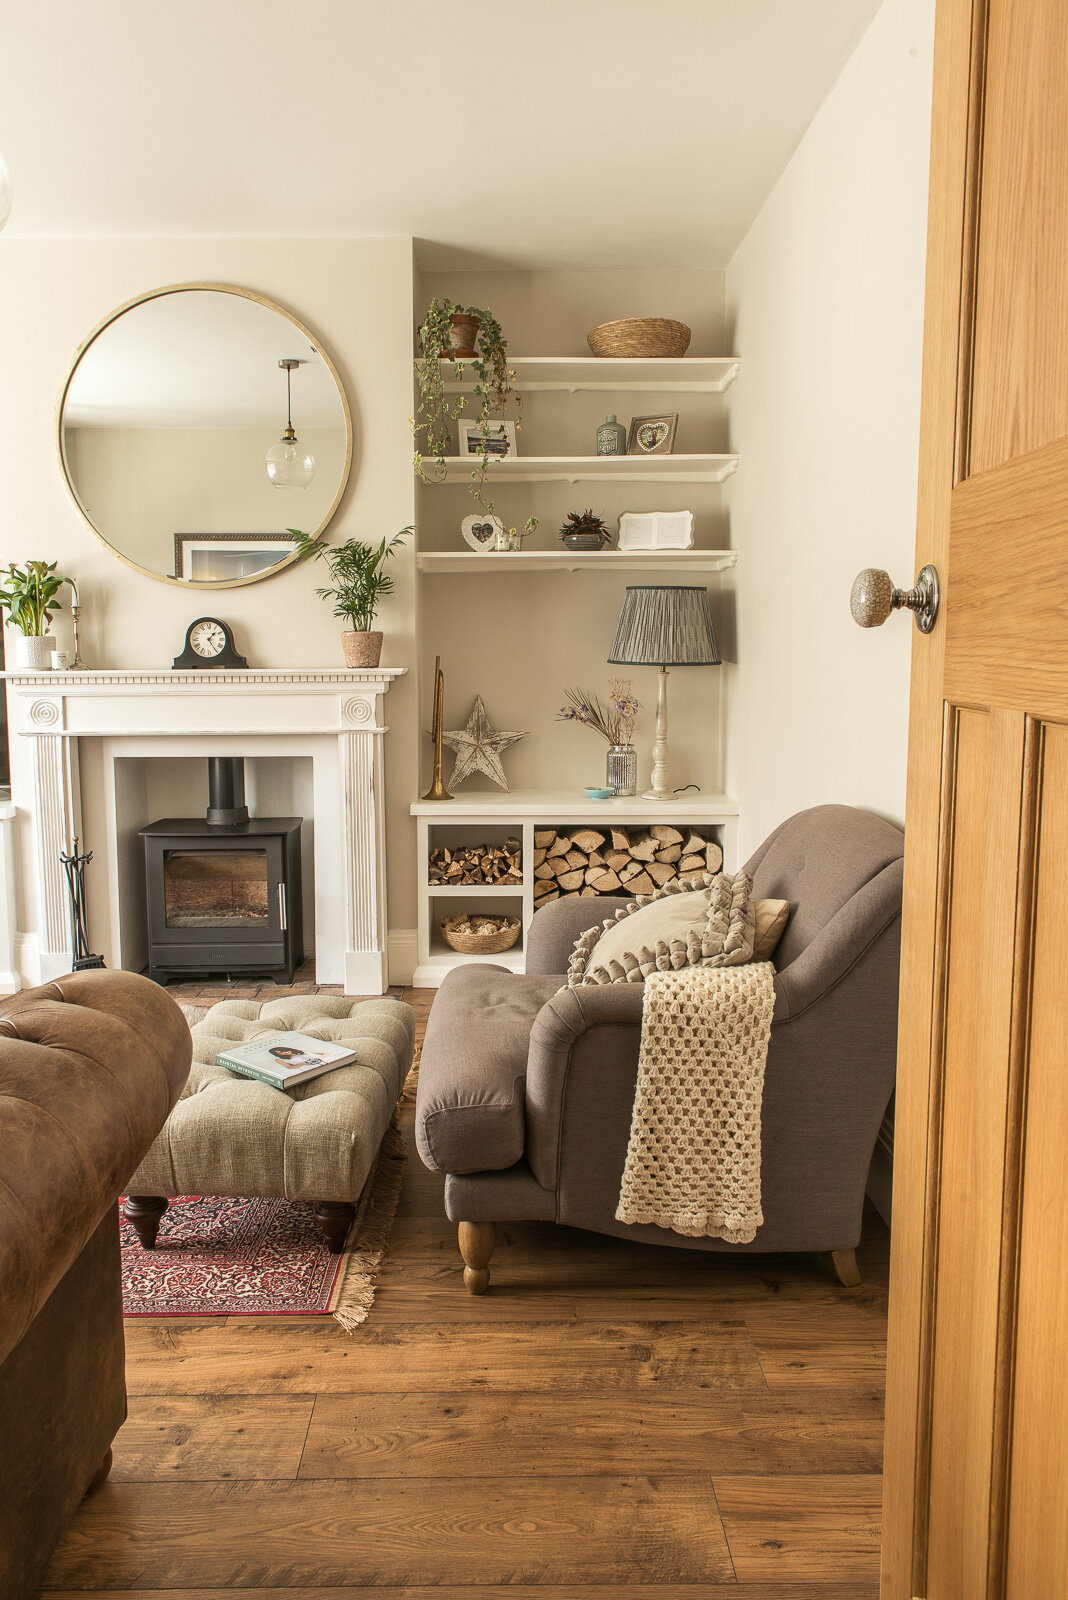 8 Cosy Living Room Ideas To Try In Your Home Fifi Mcgee Interiors Renovation Blog